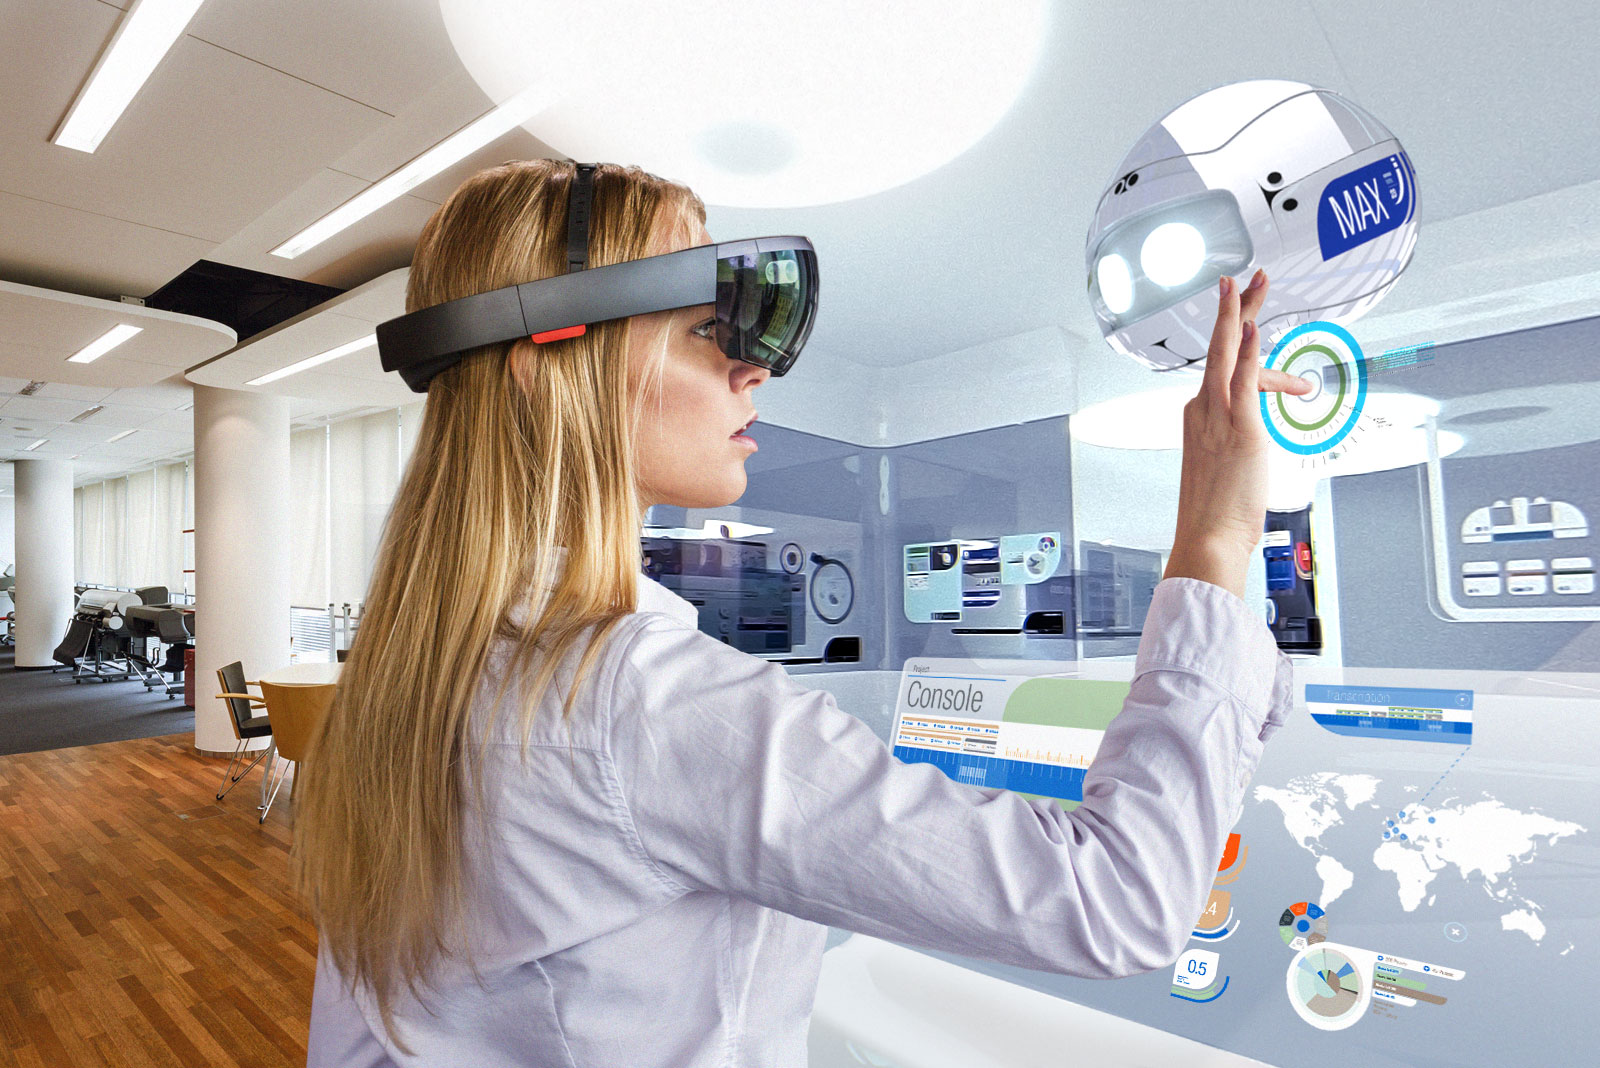 Virtual Reality, Augmented Reality, Future of work, Transformation